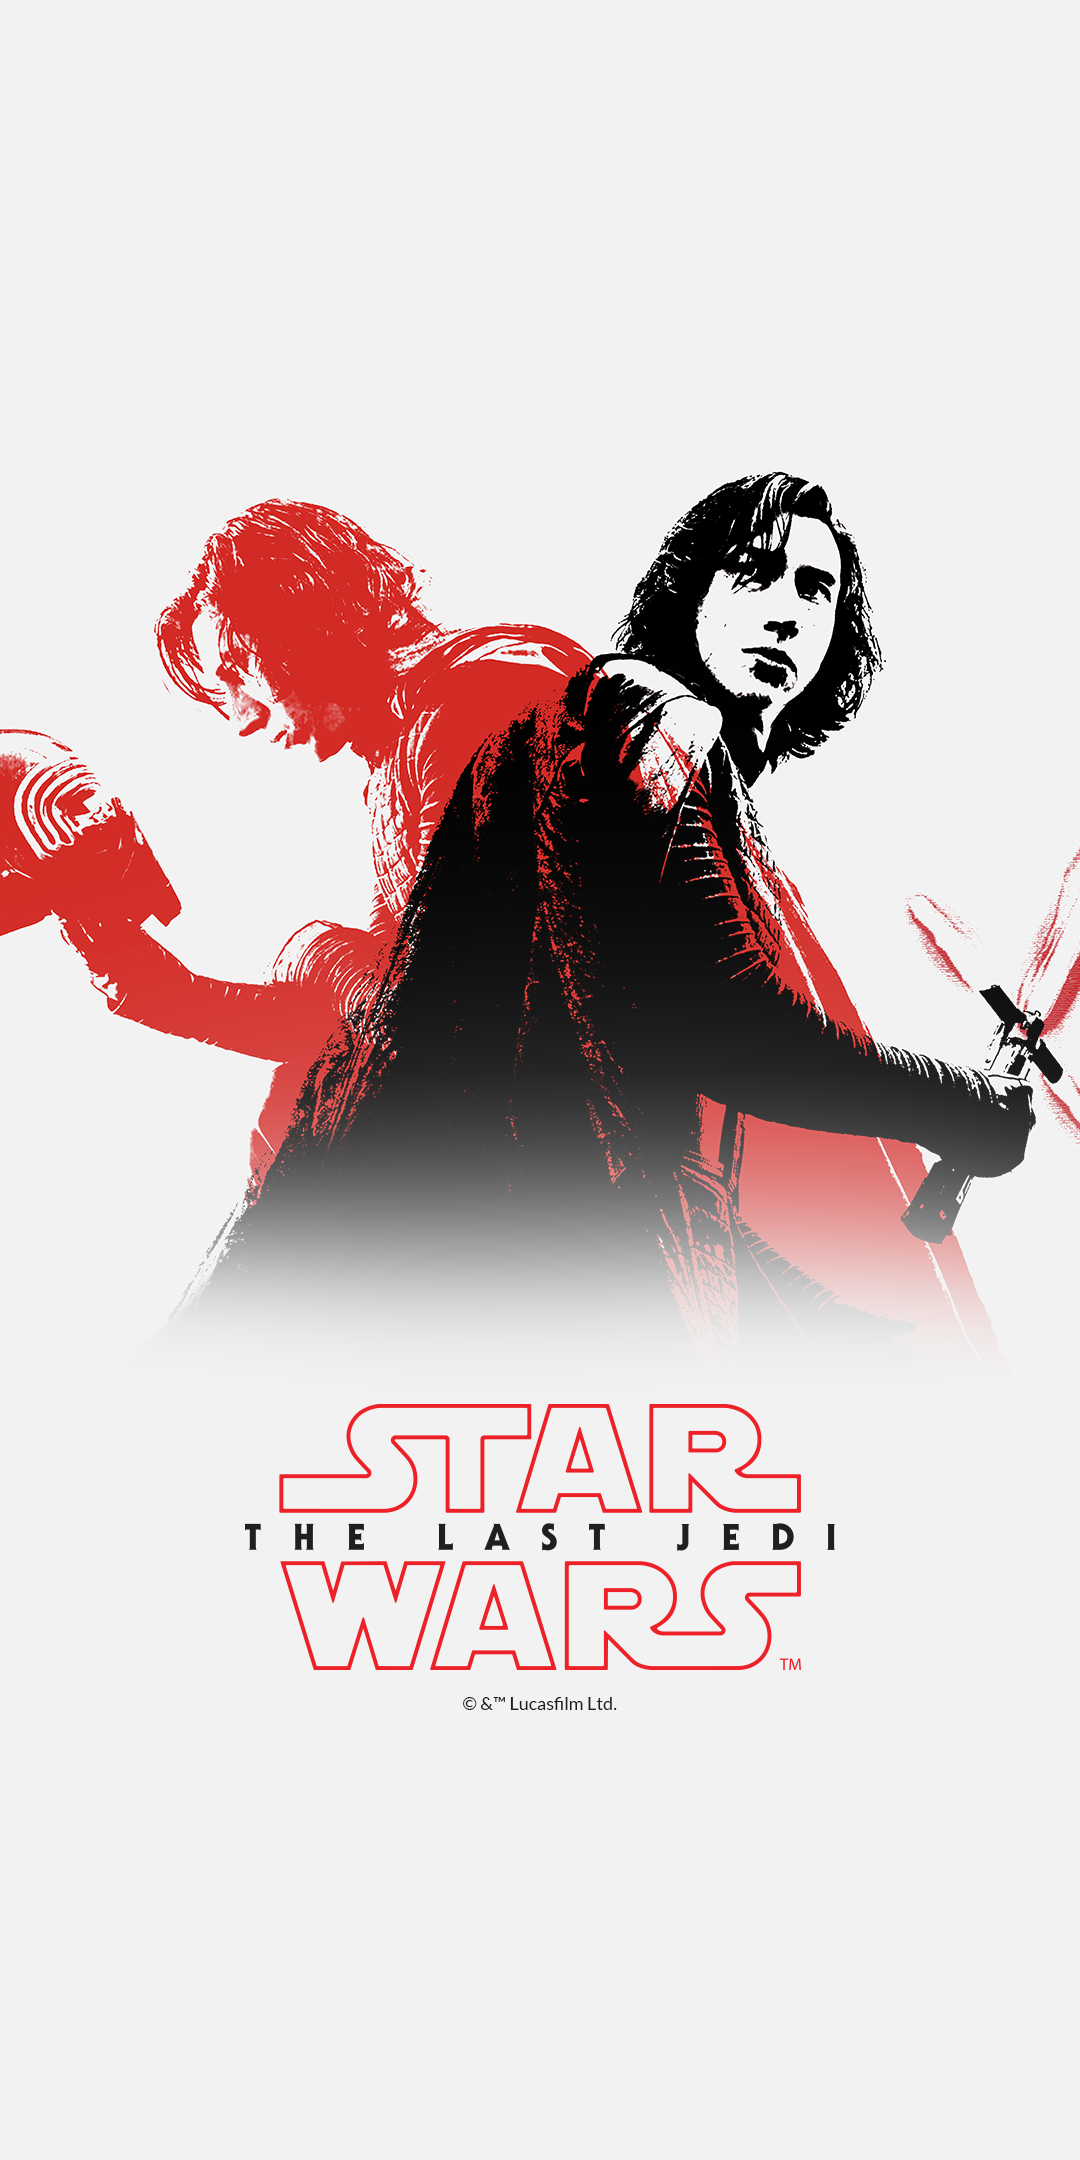 Get All The Star Wars The Last Jedi Wallpapers From The Special Edition Oneplus 5t Download